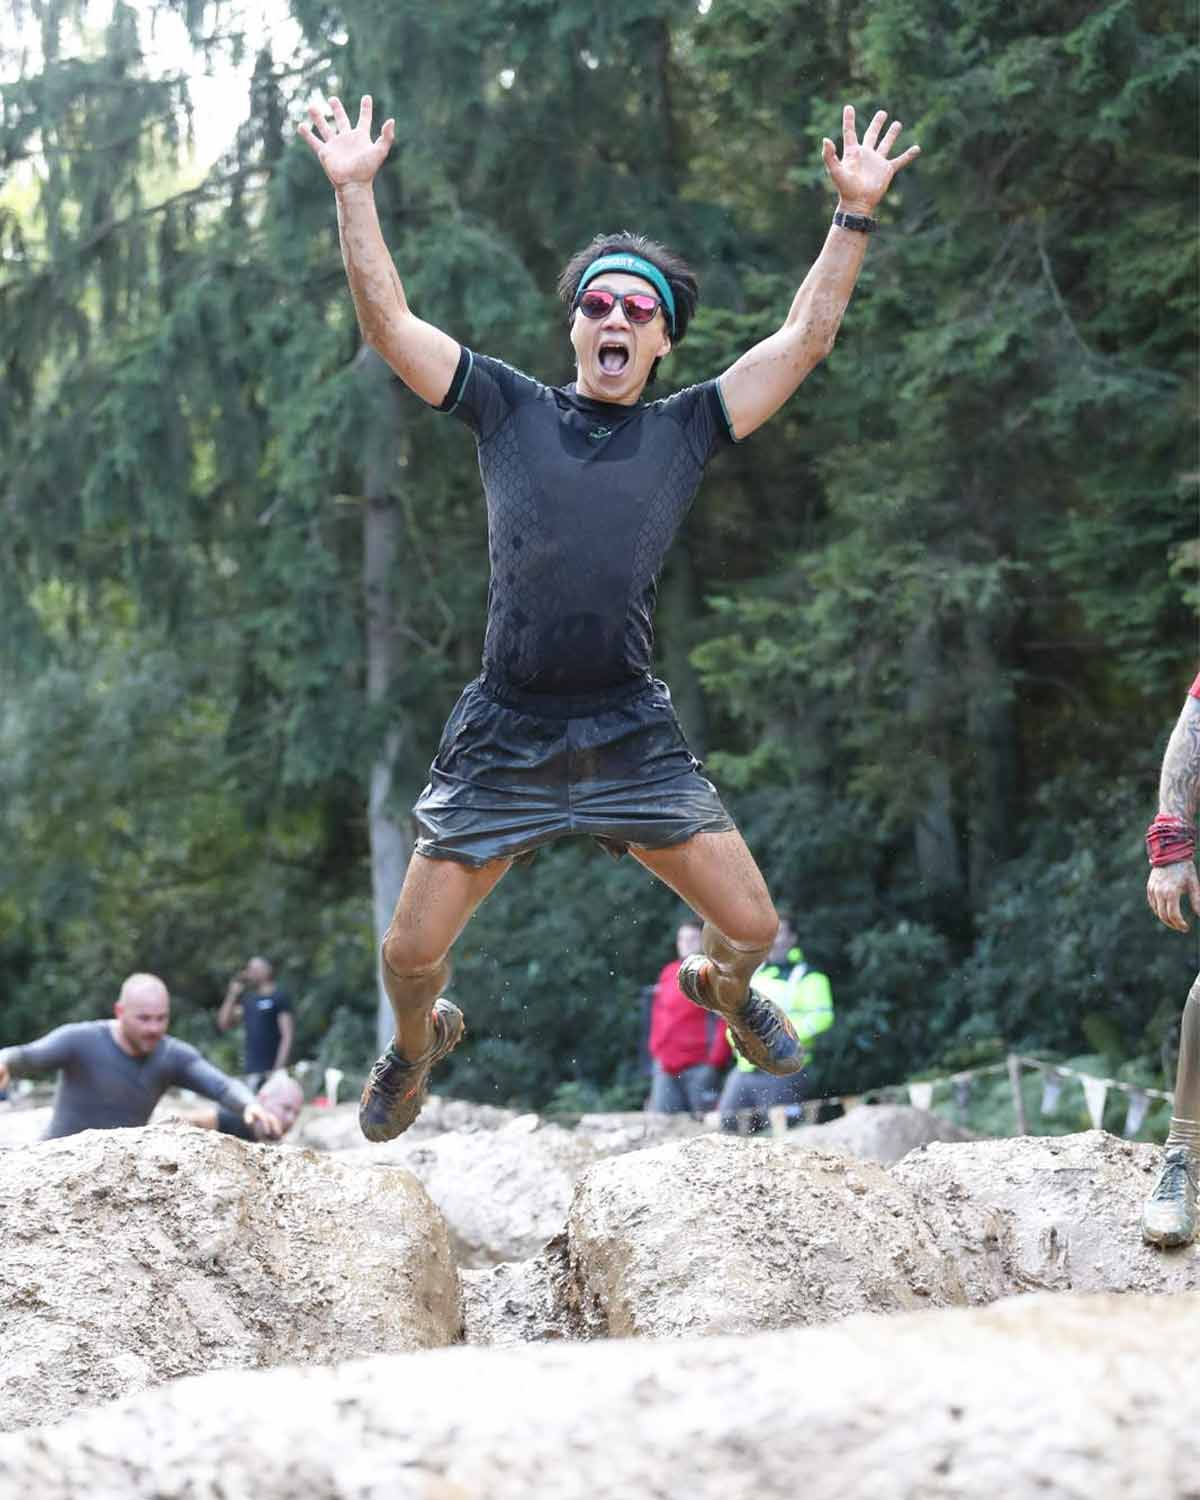 Enertor ambassador Will wearing Enertor Baselayer at Tough Mudder